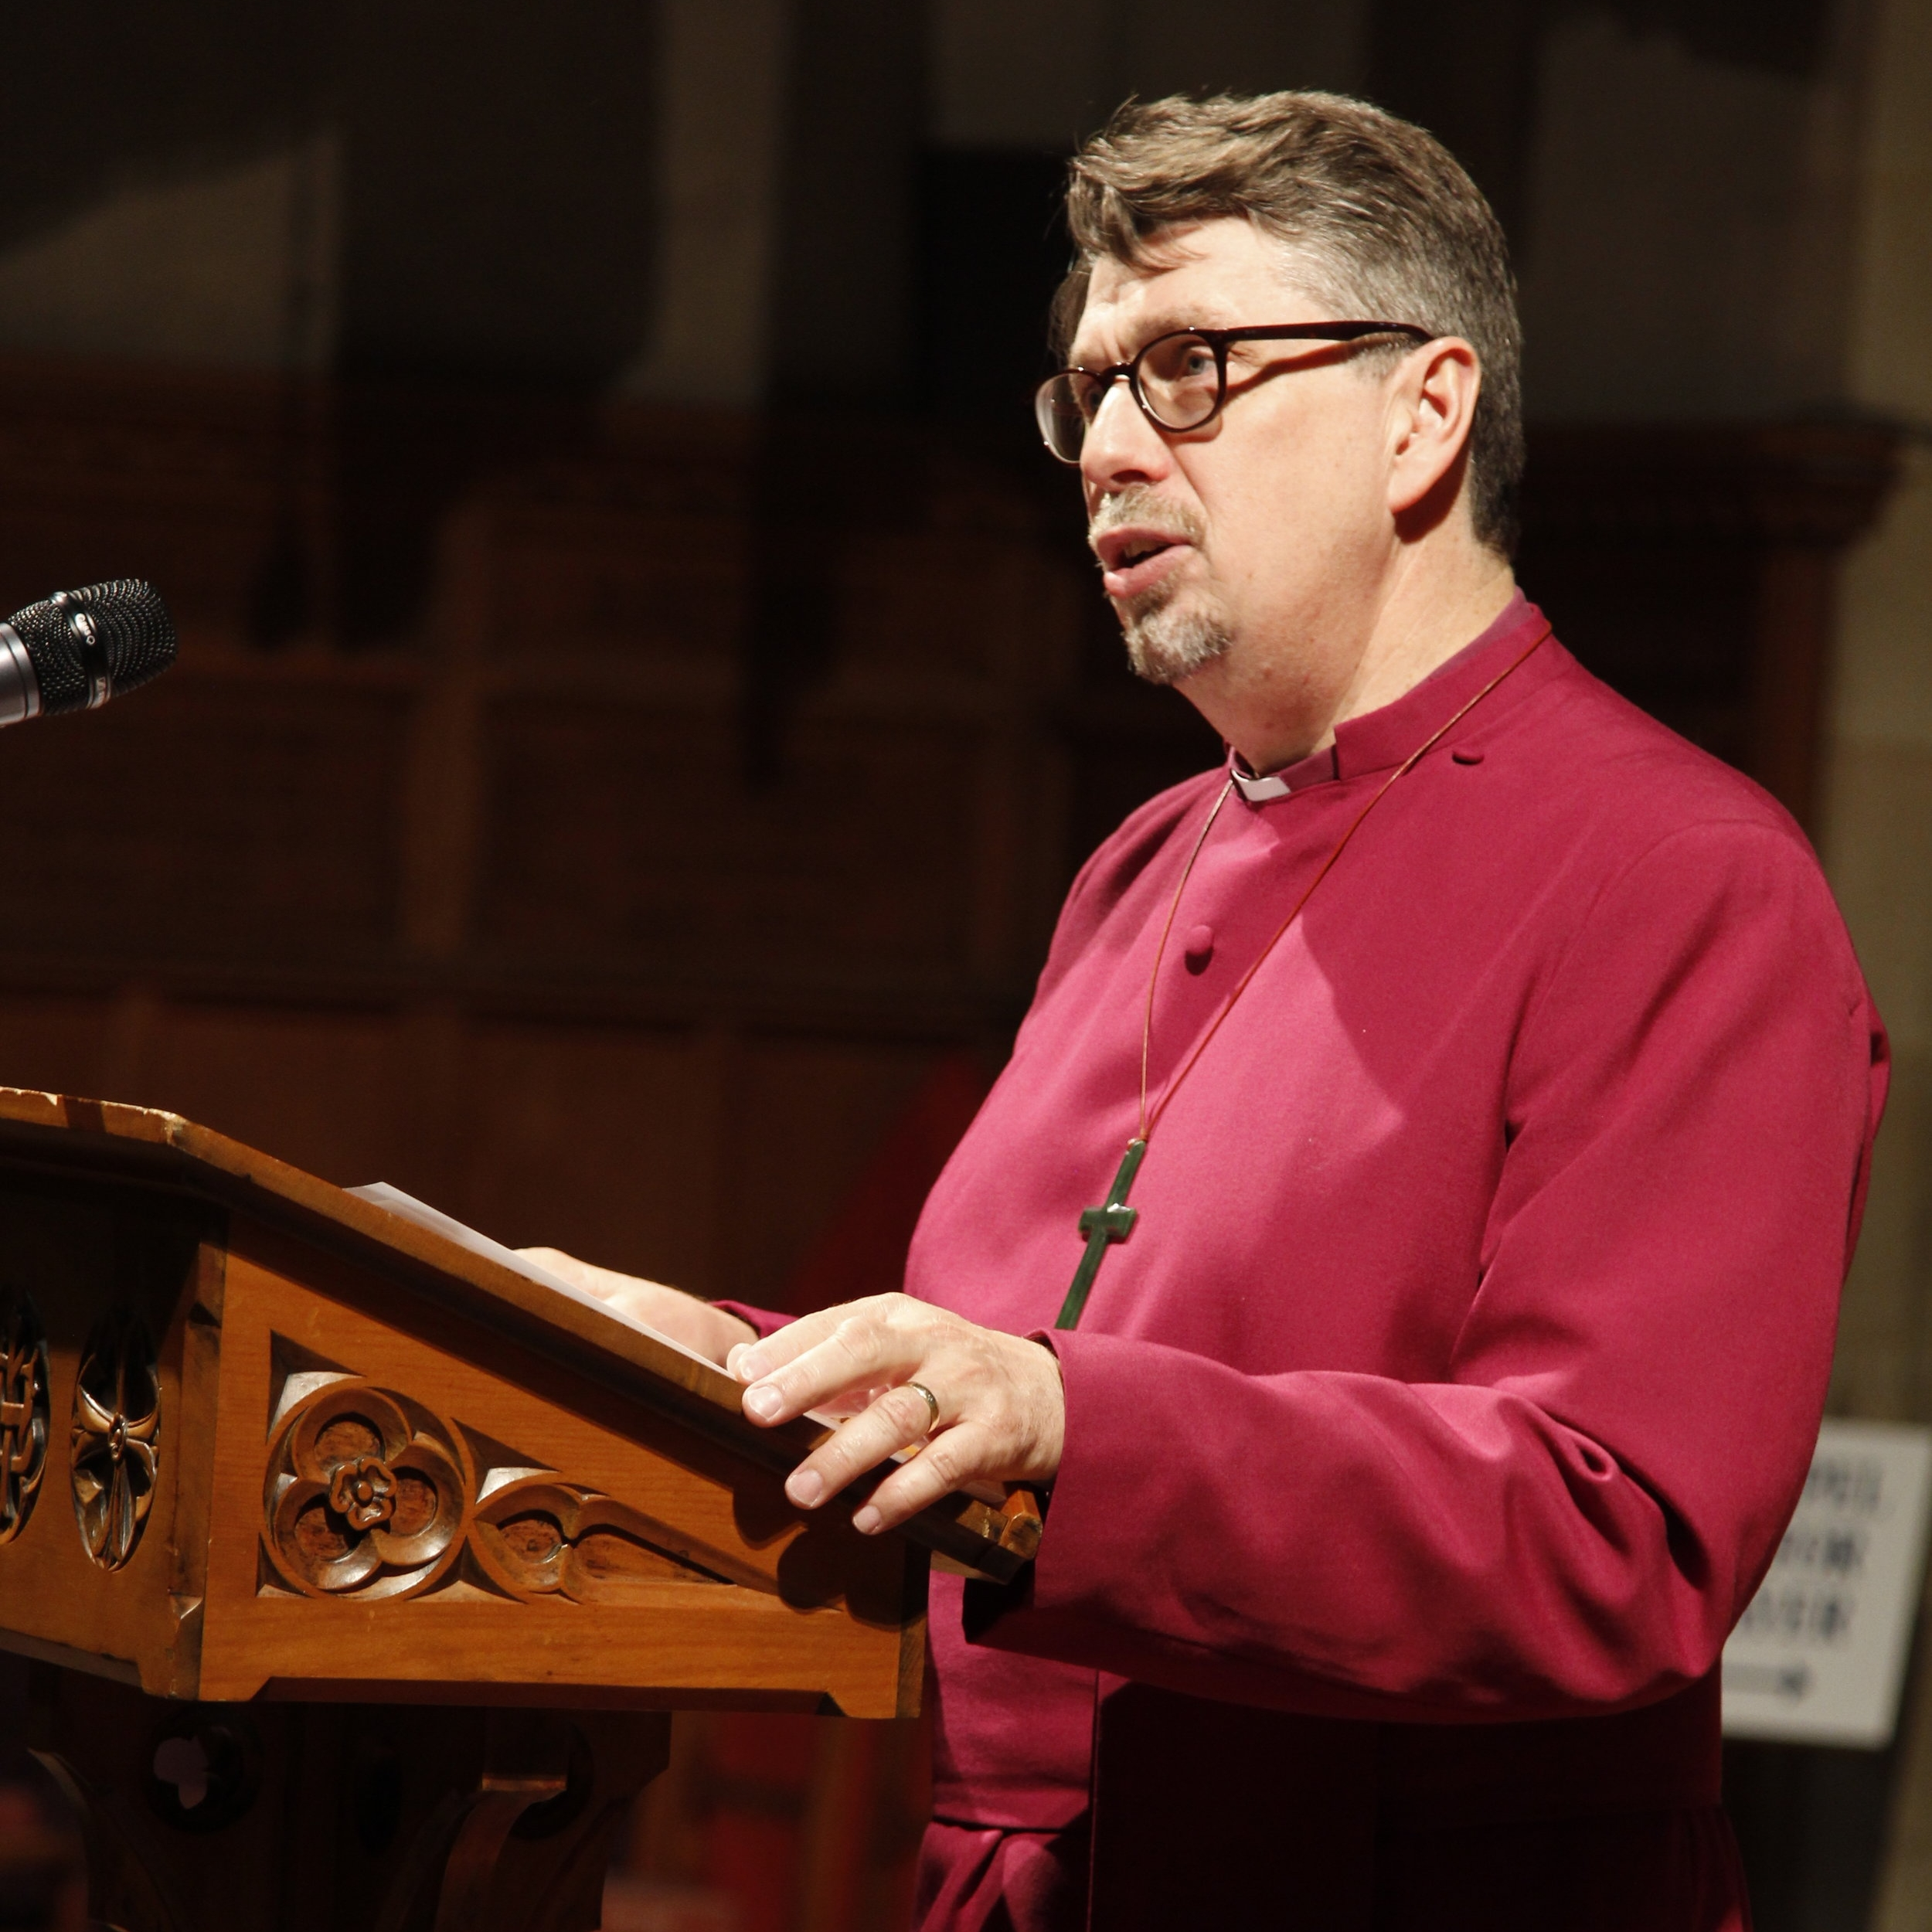 The Right Reverend Dr Tim Harris, Administrator of the Diocese of Adelaide (Sede Vacante)